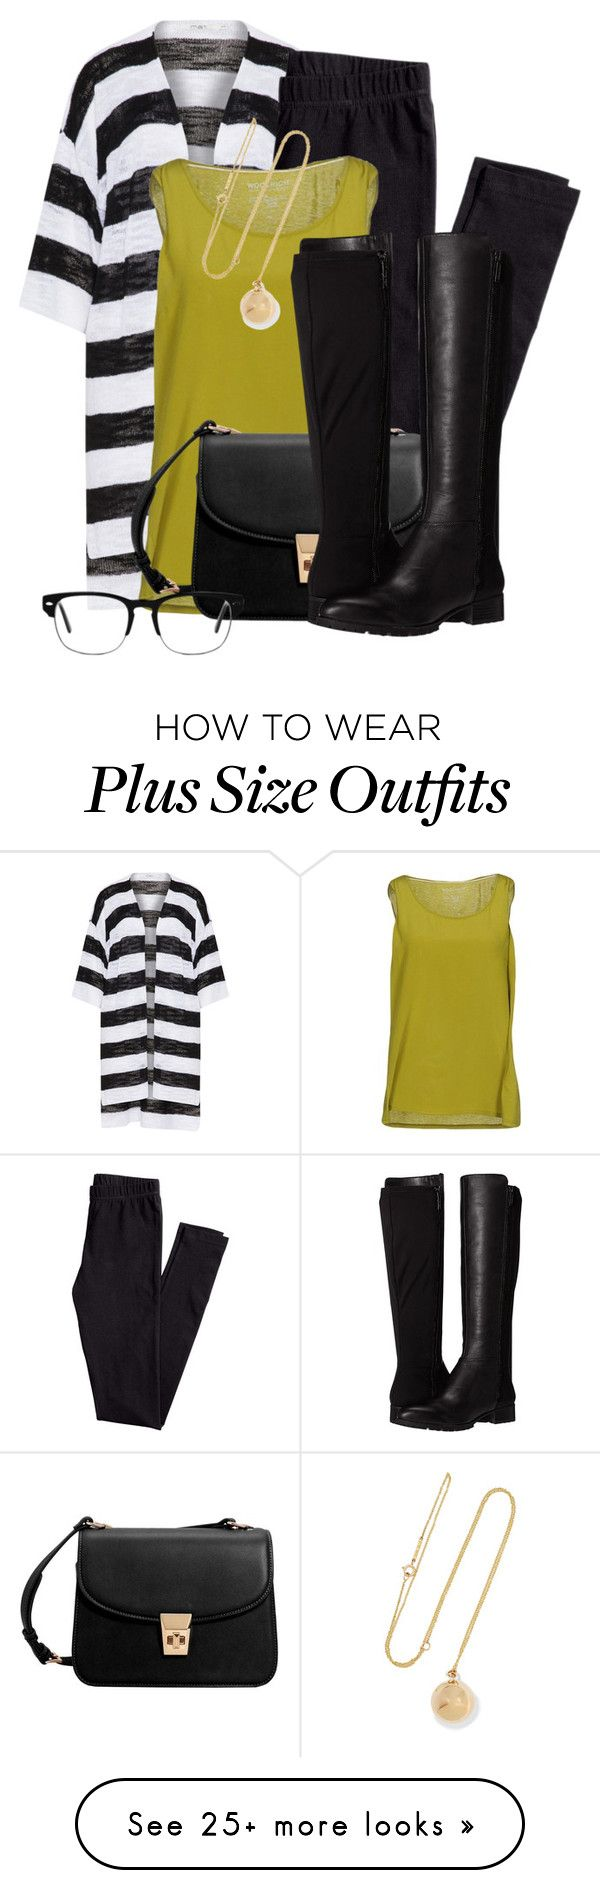 """""""Today: March 6, 2018!"""" by colierollers on Polyvore featuring Mat, H&M, Woolrich, Grace Lee Designs, MANGO and Nine West"""